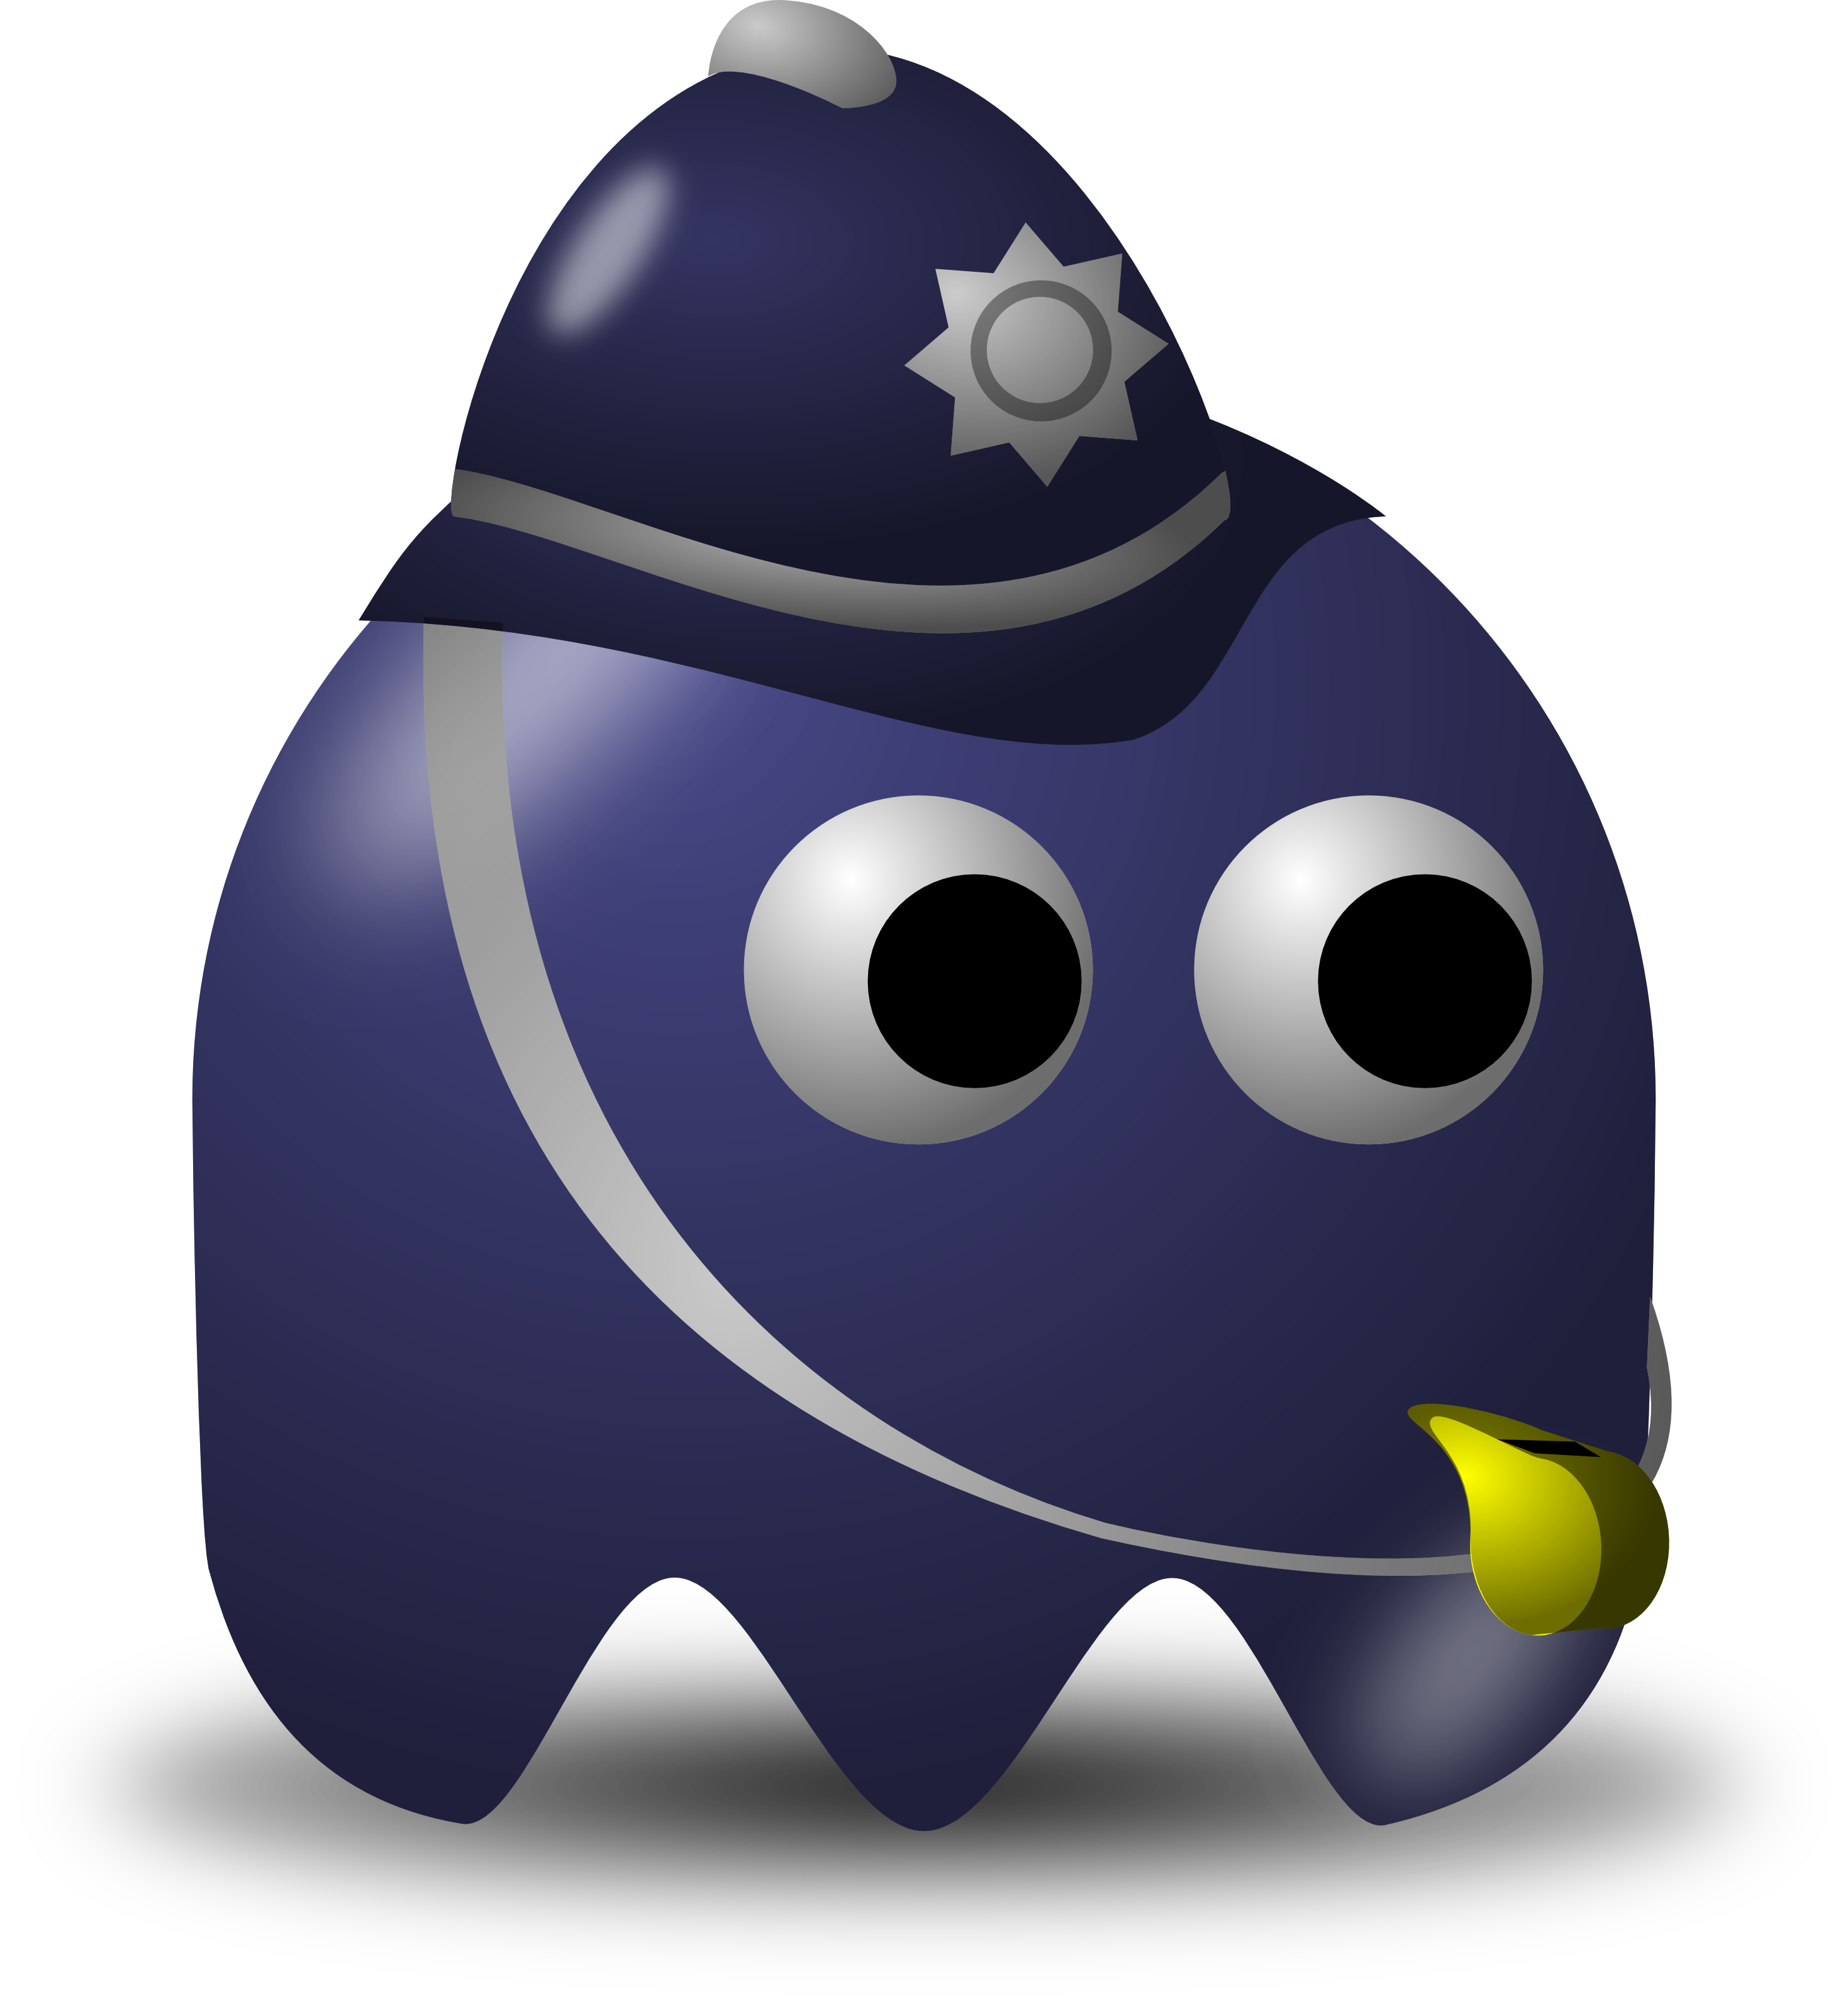 Policeman Avatar Character With A Whistle - Free Vector Clipart ...